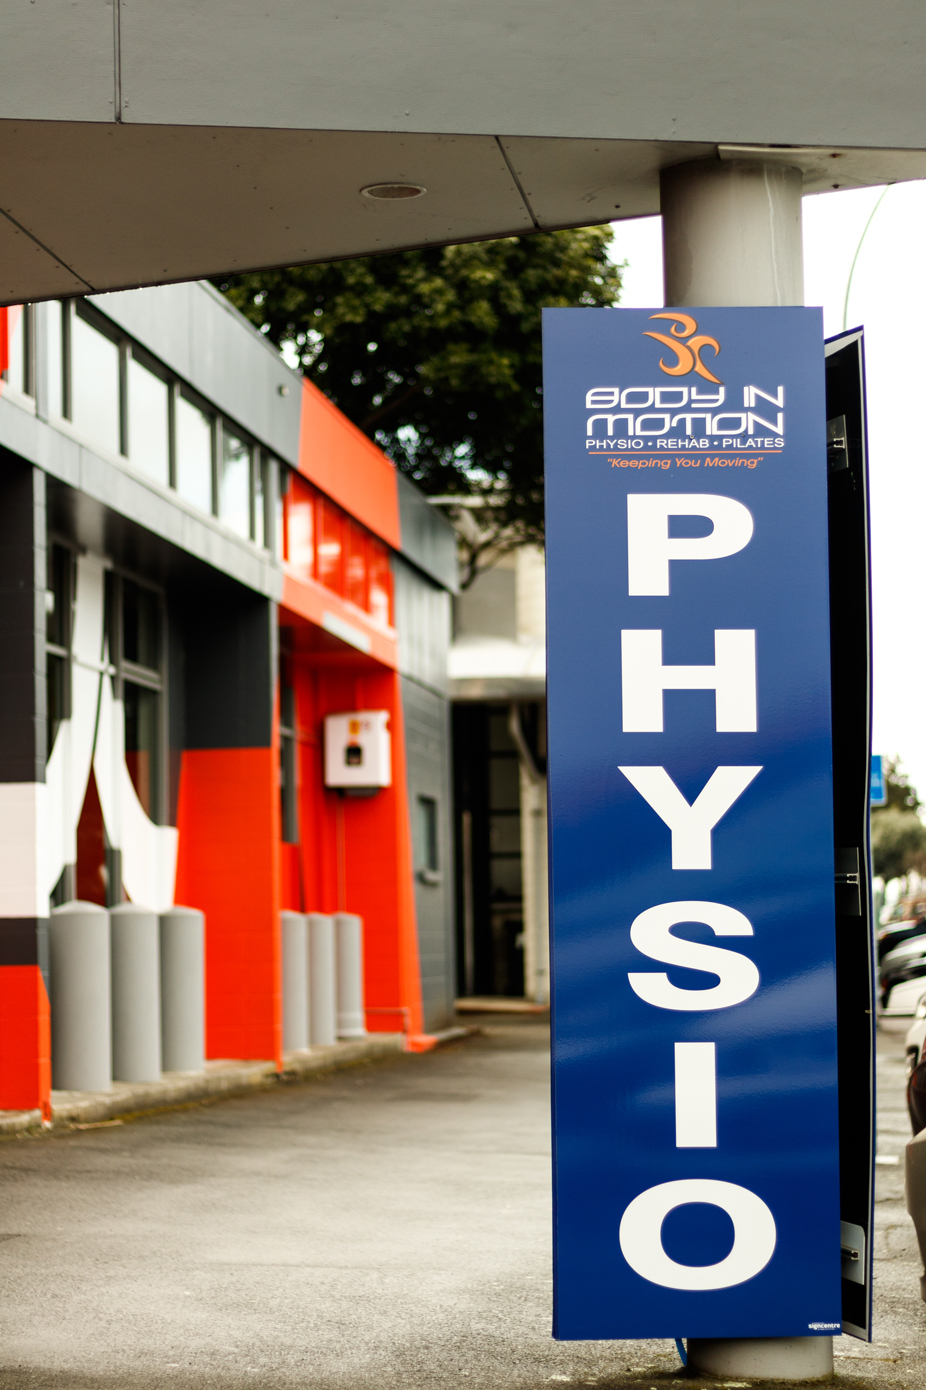 Body in Motion Physio